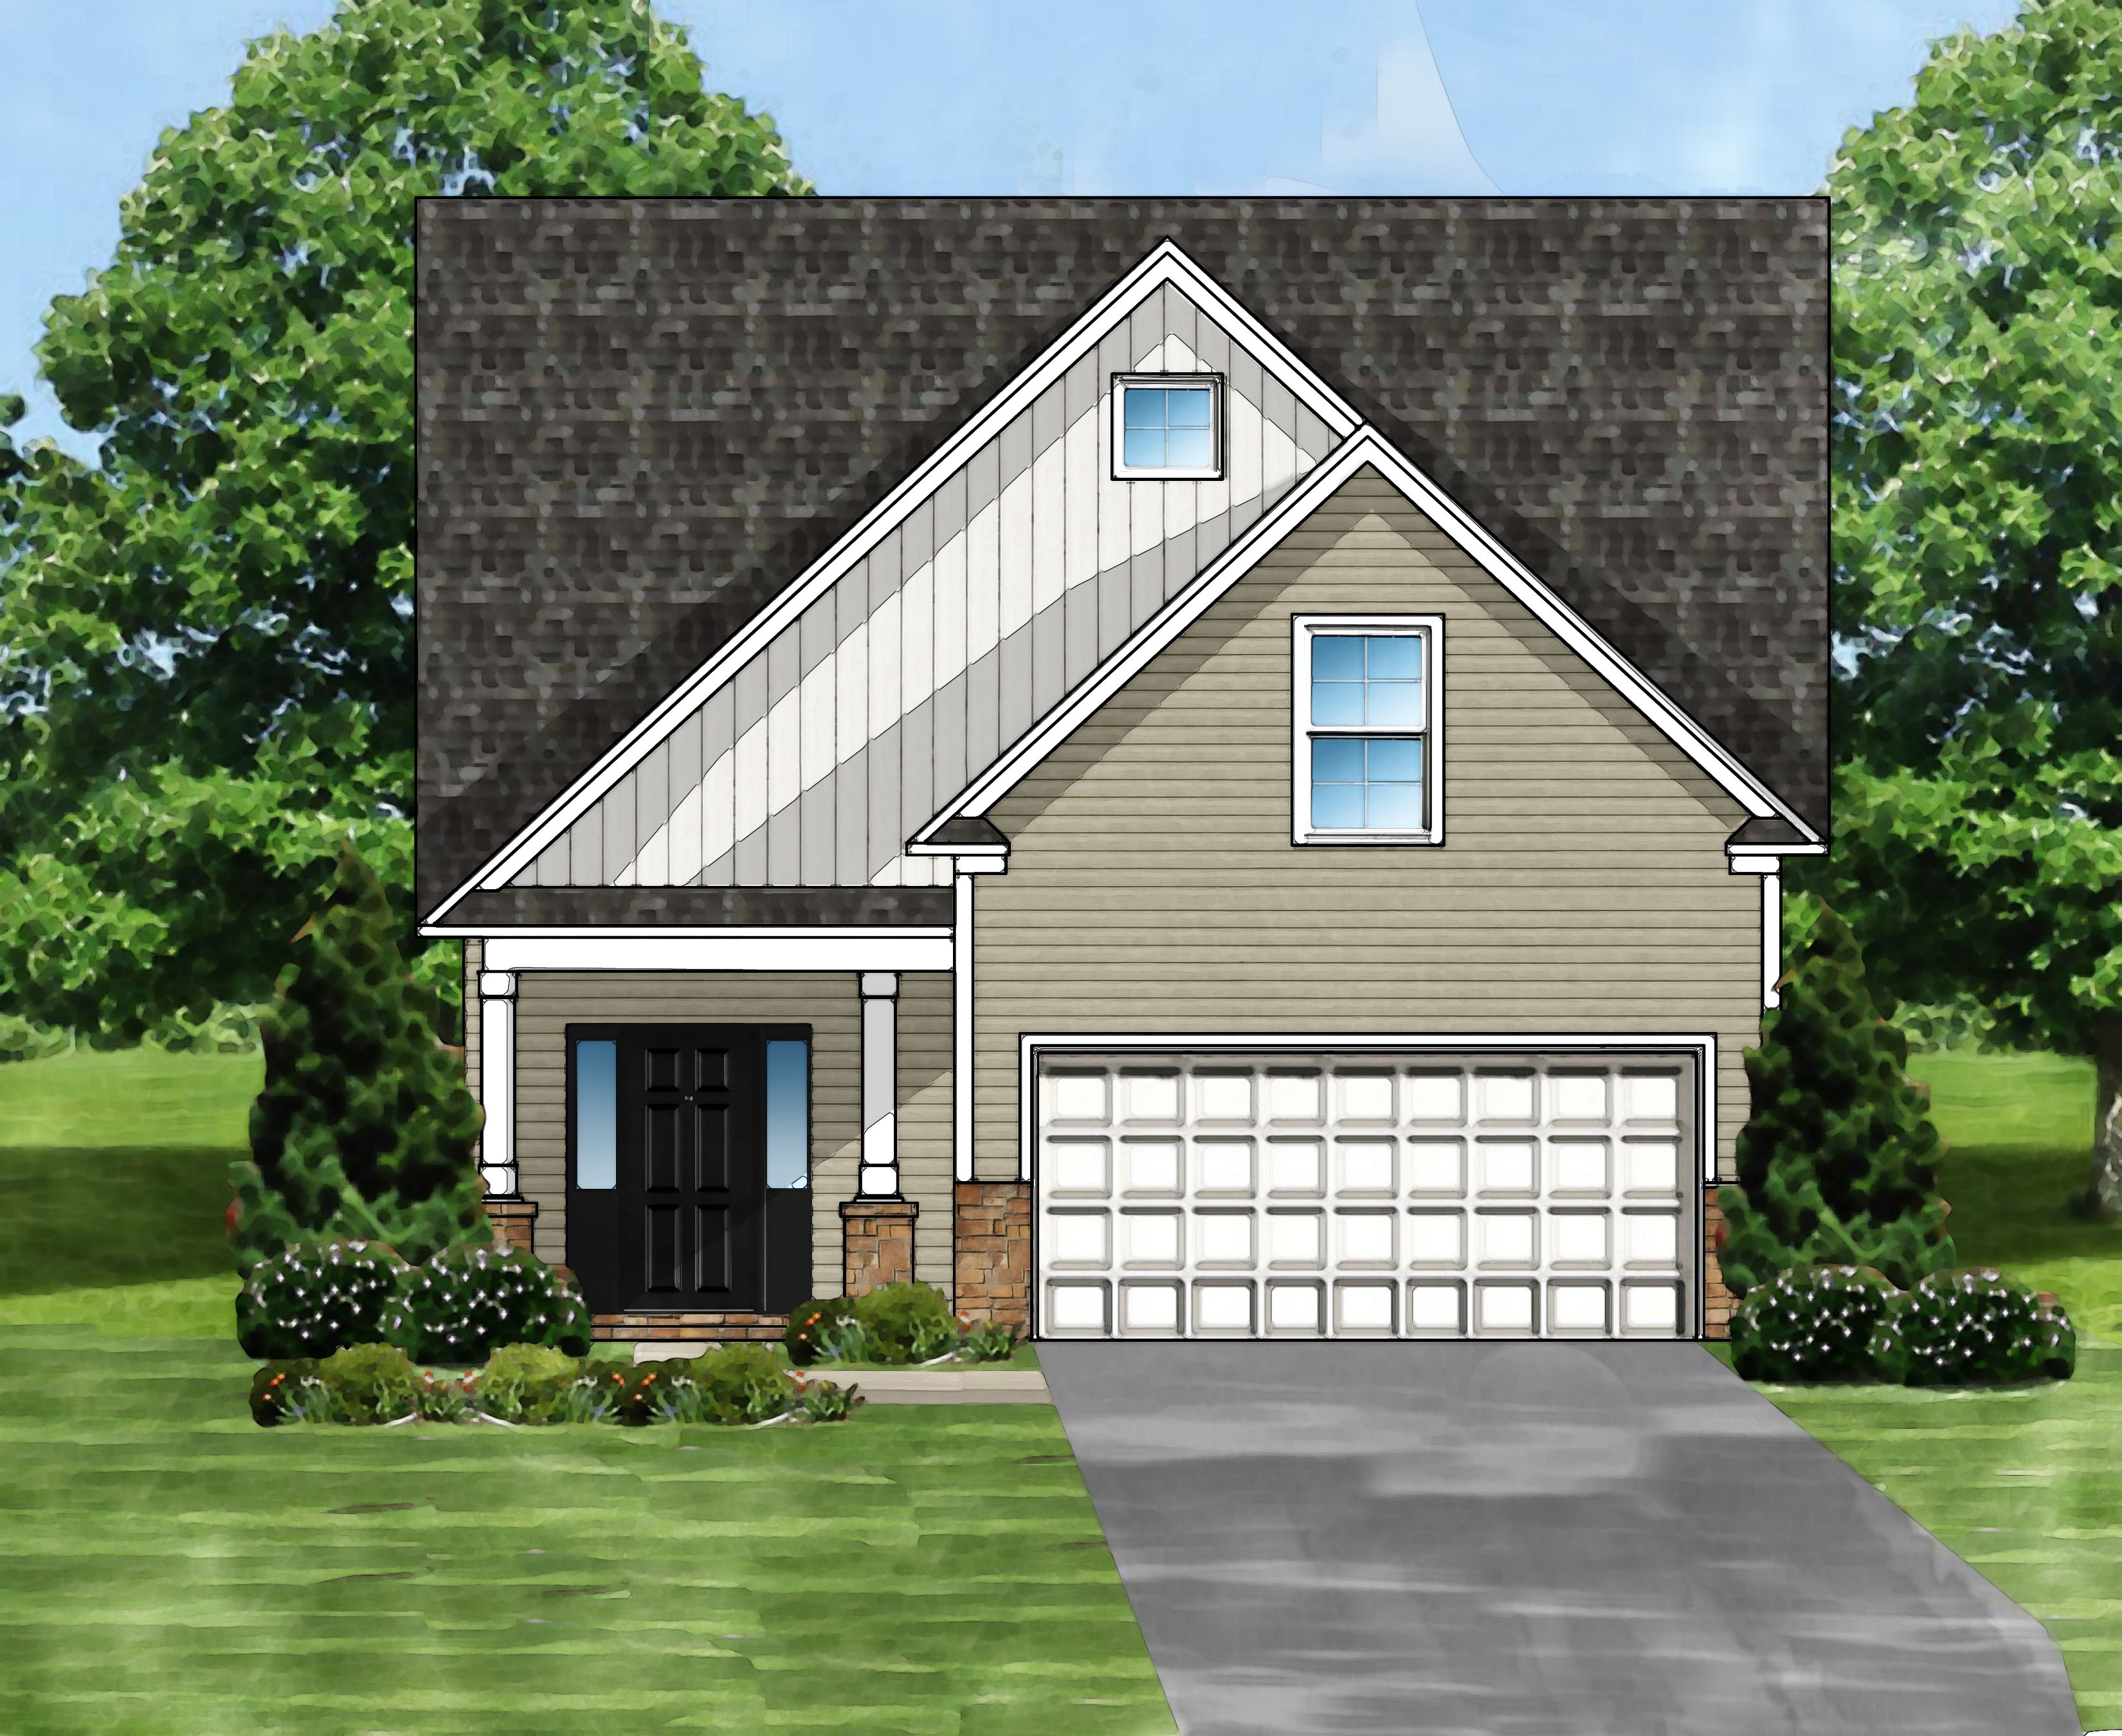 Sabel B Plan, Simpsonville, South Carolina 29680